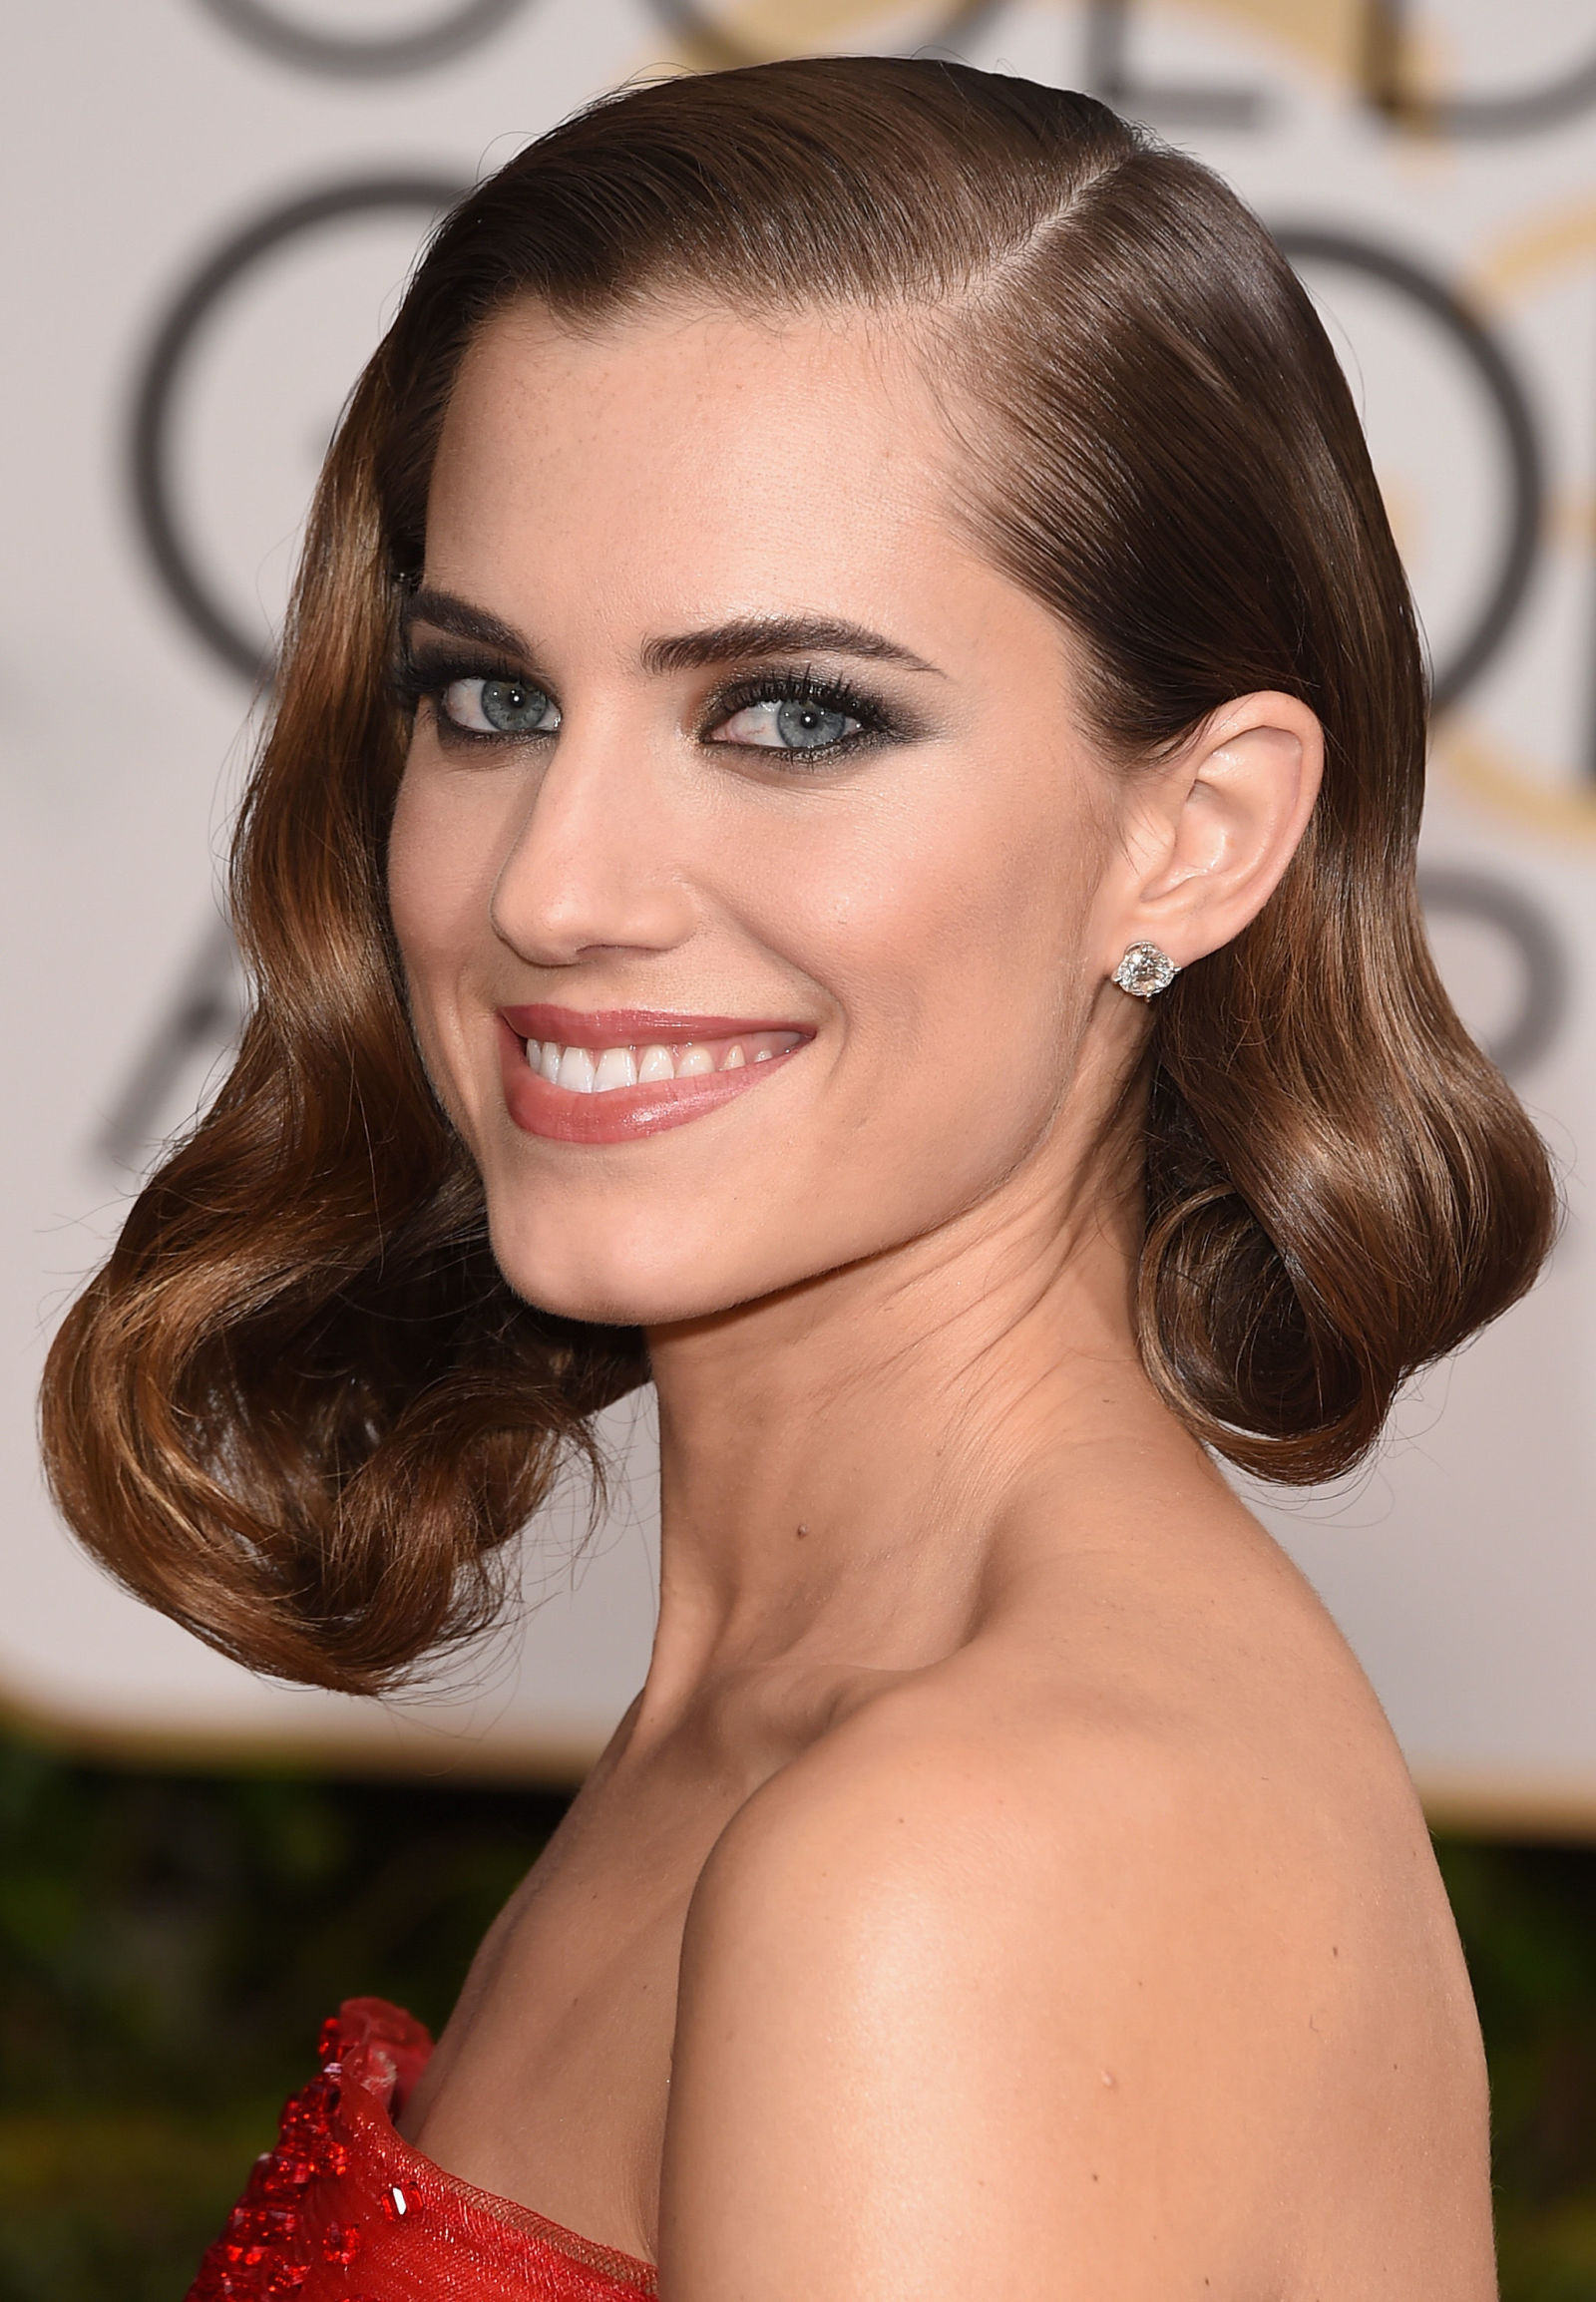 #AllisonWilliams #GoldenGlobes #2015